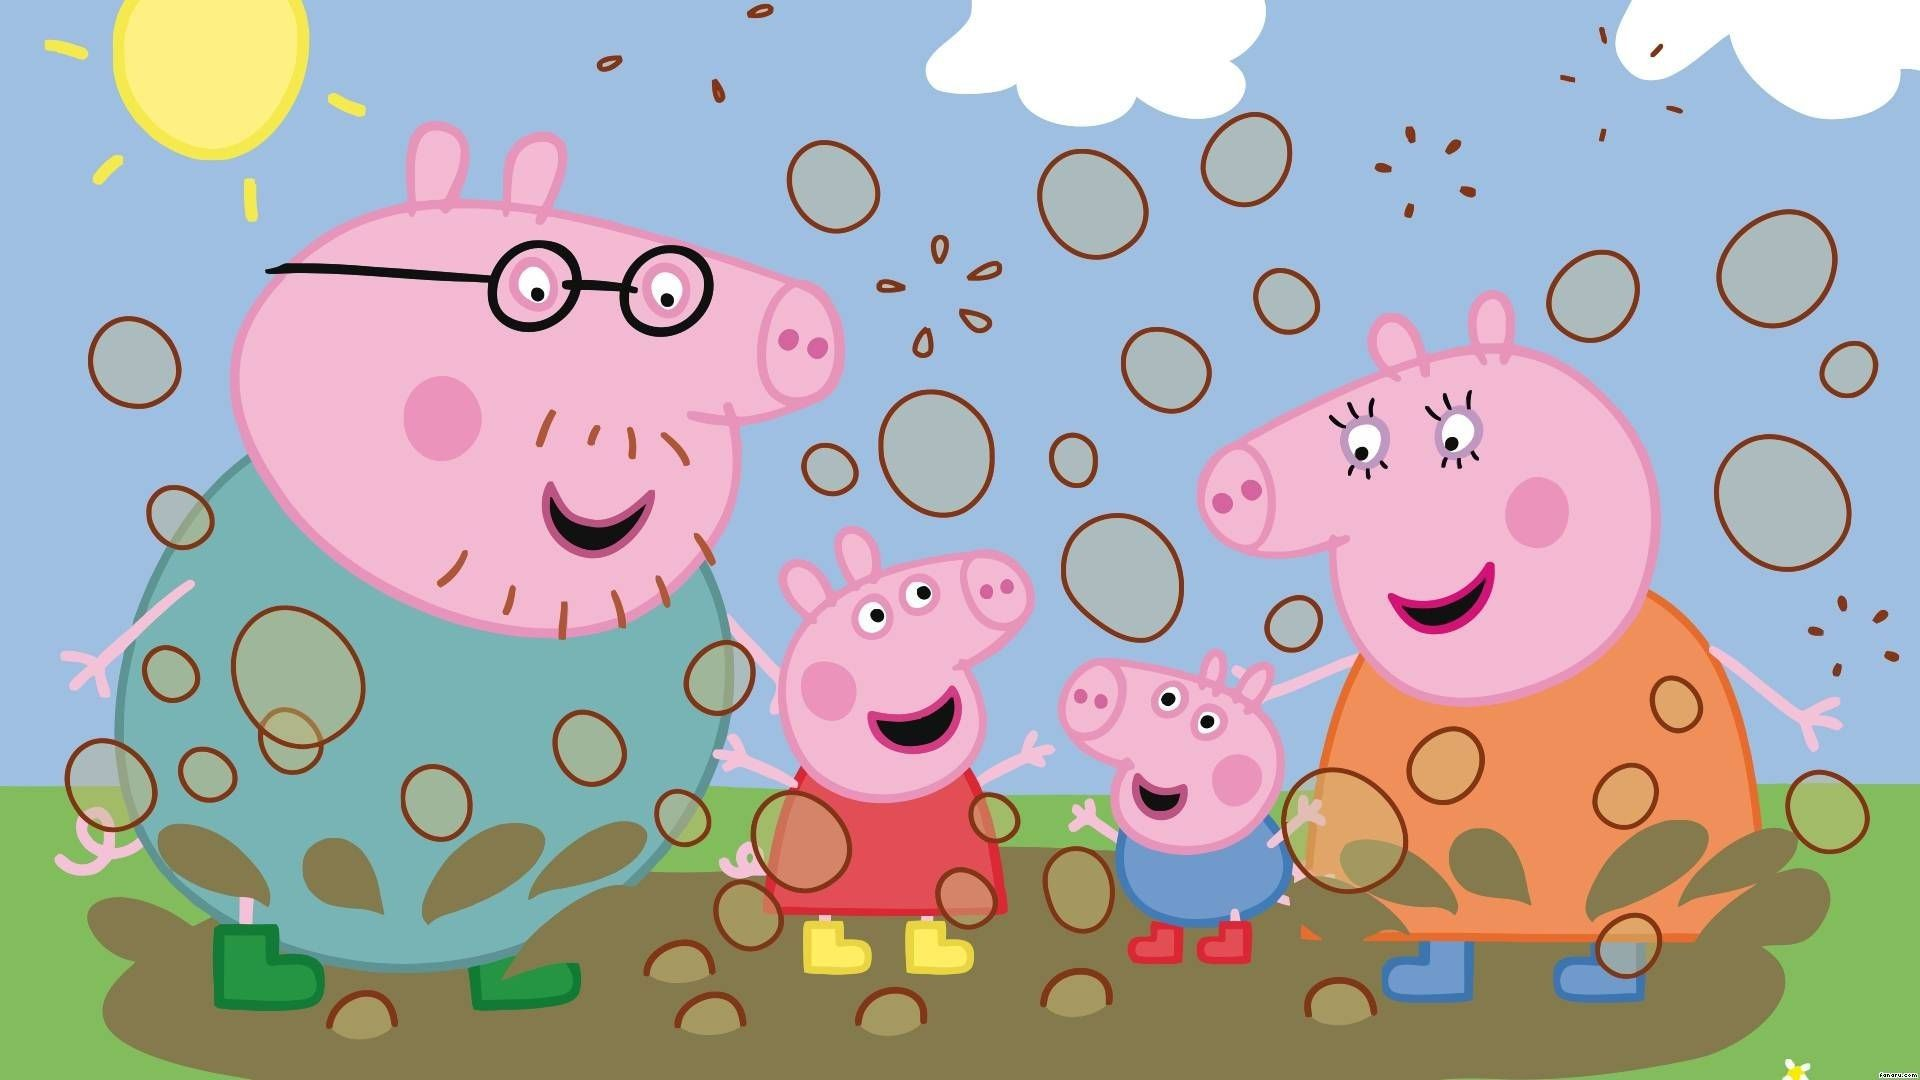 Peppa Pig Wallpapers   Top Peppa Pig Backgrounds 1920x1080